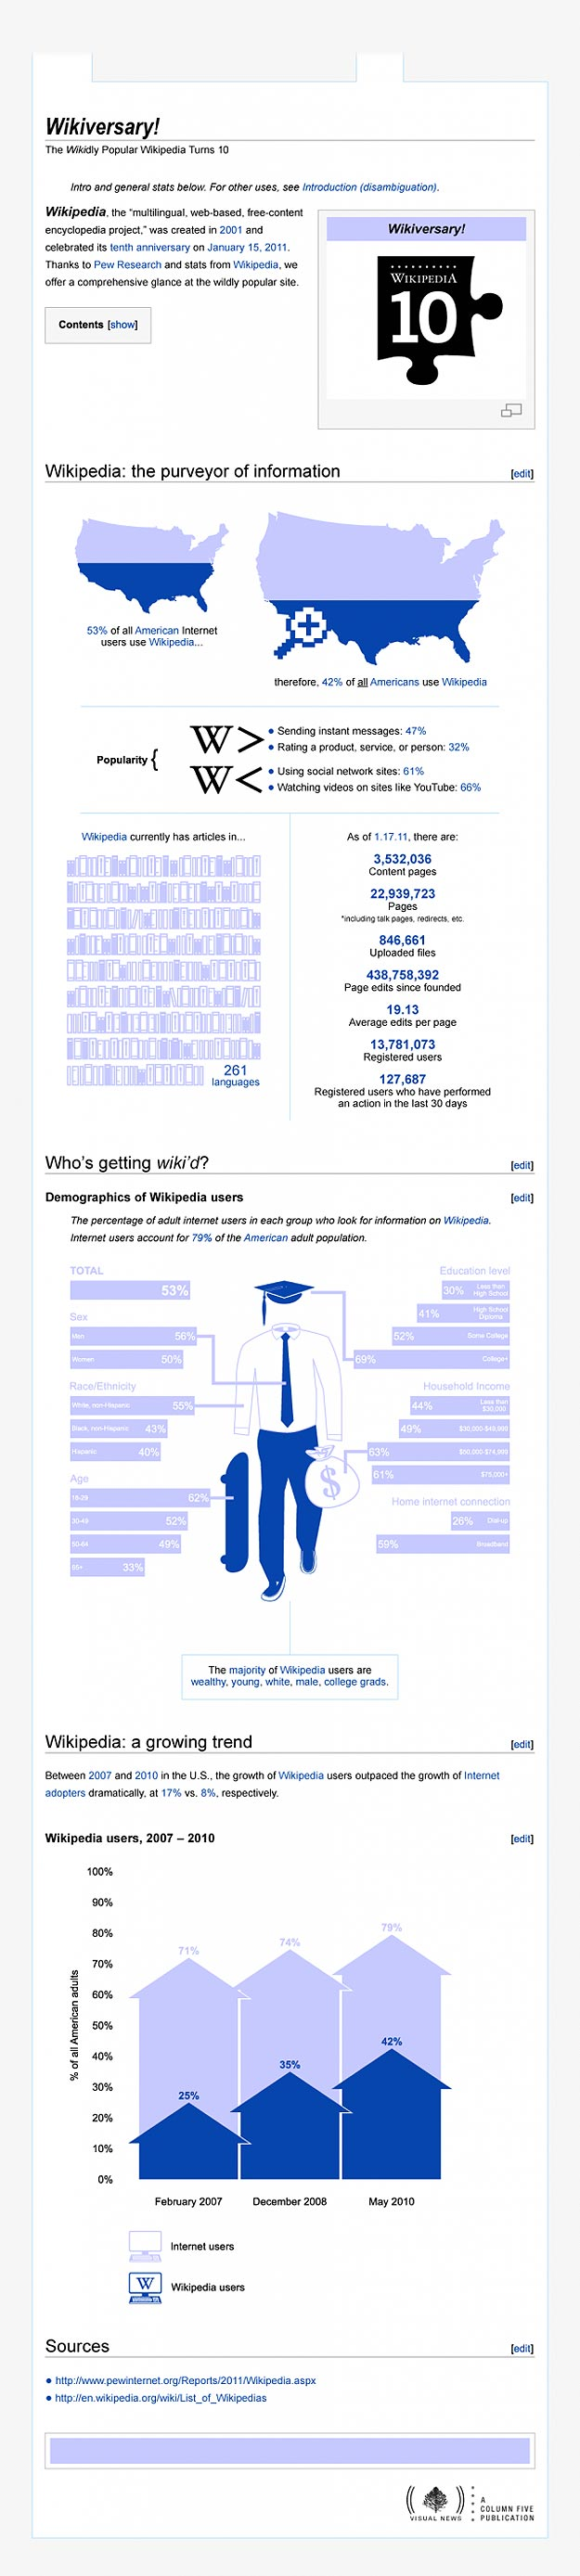 Wikipedia: What You Don't Know May Surprise You